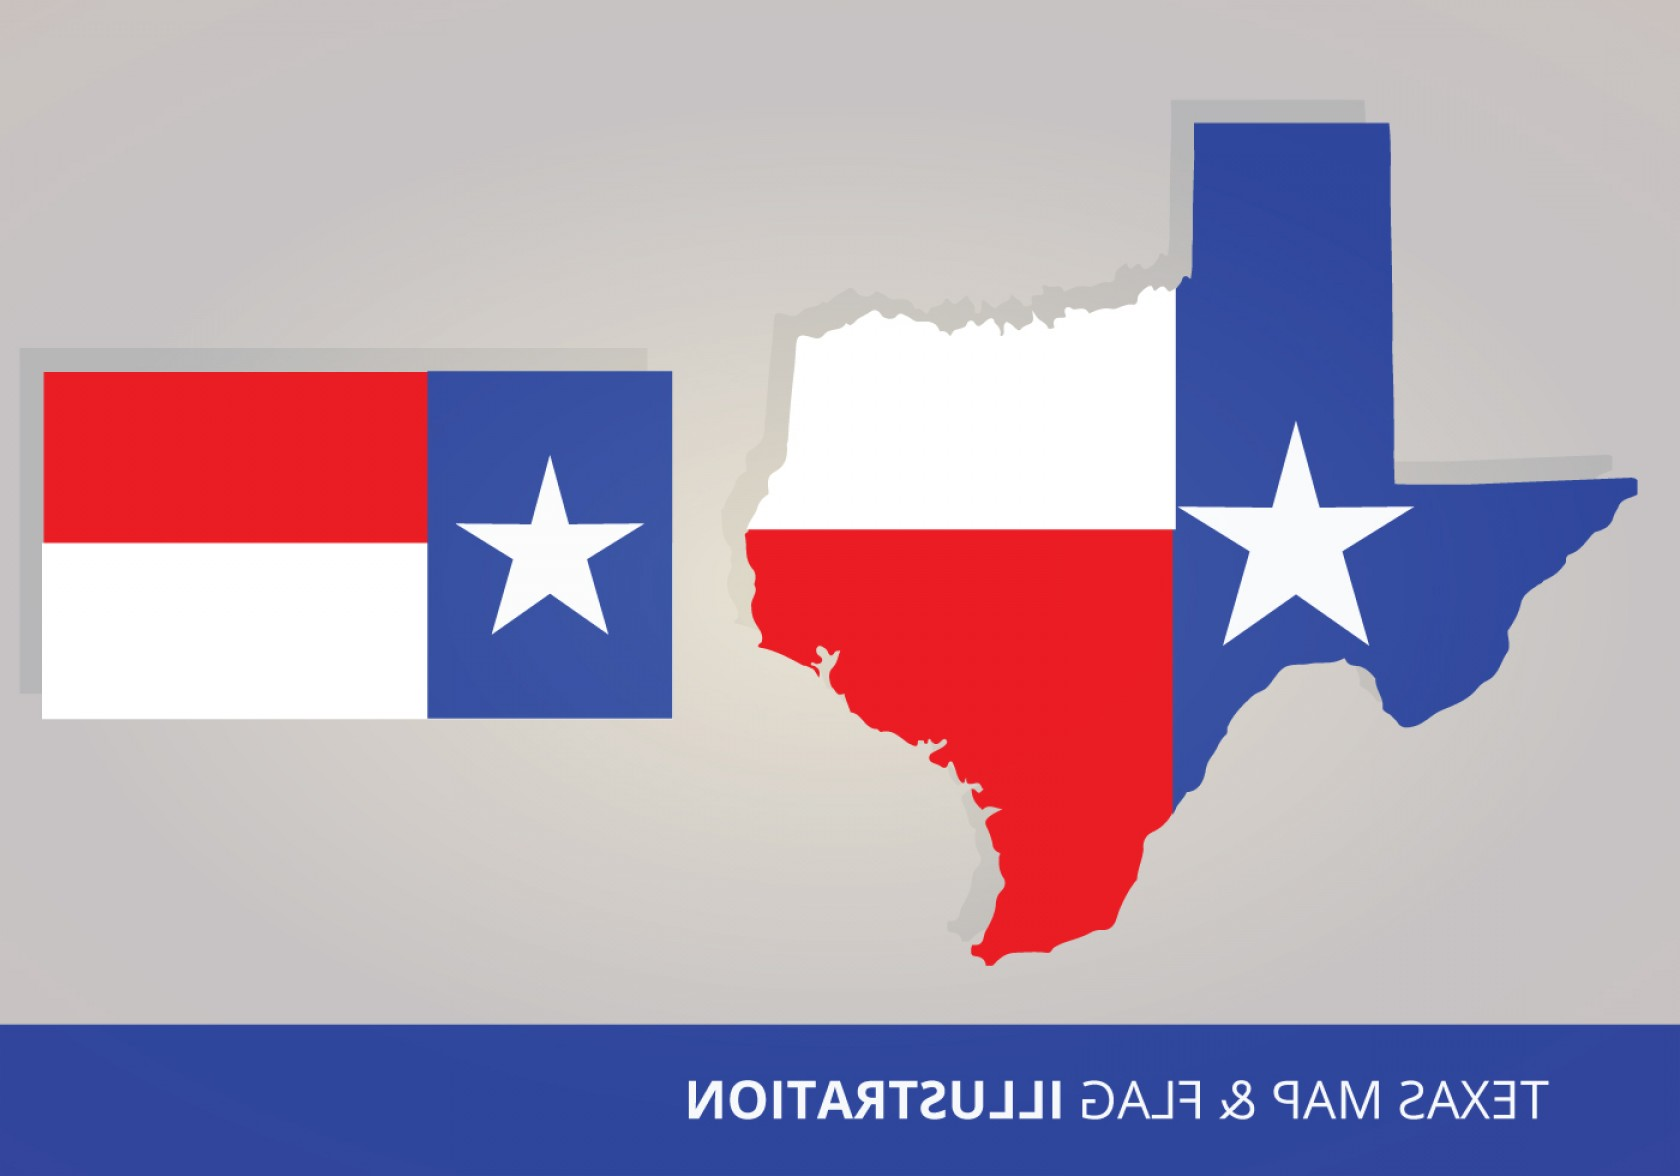 Texas Flag Vector Art: Texas Flag And Map Vectors